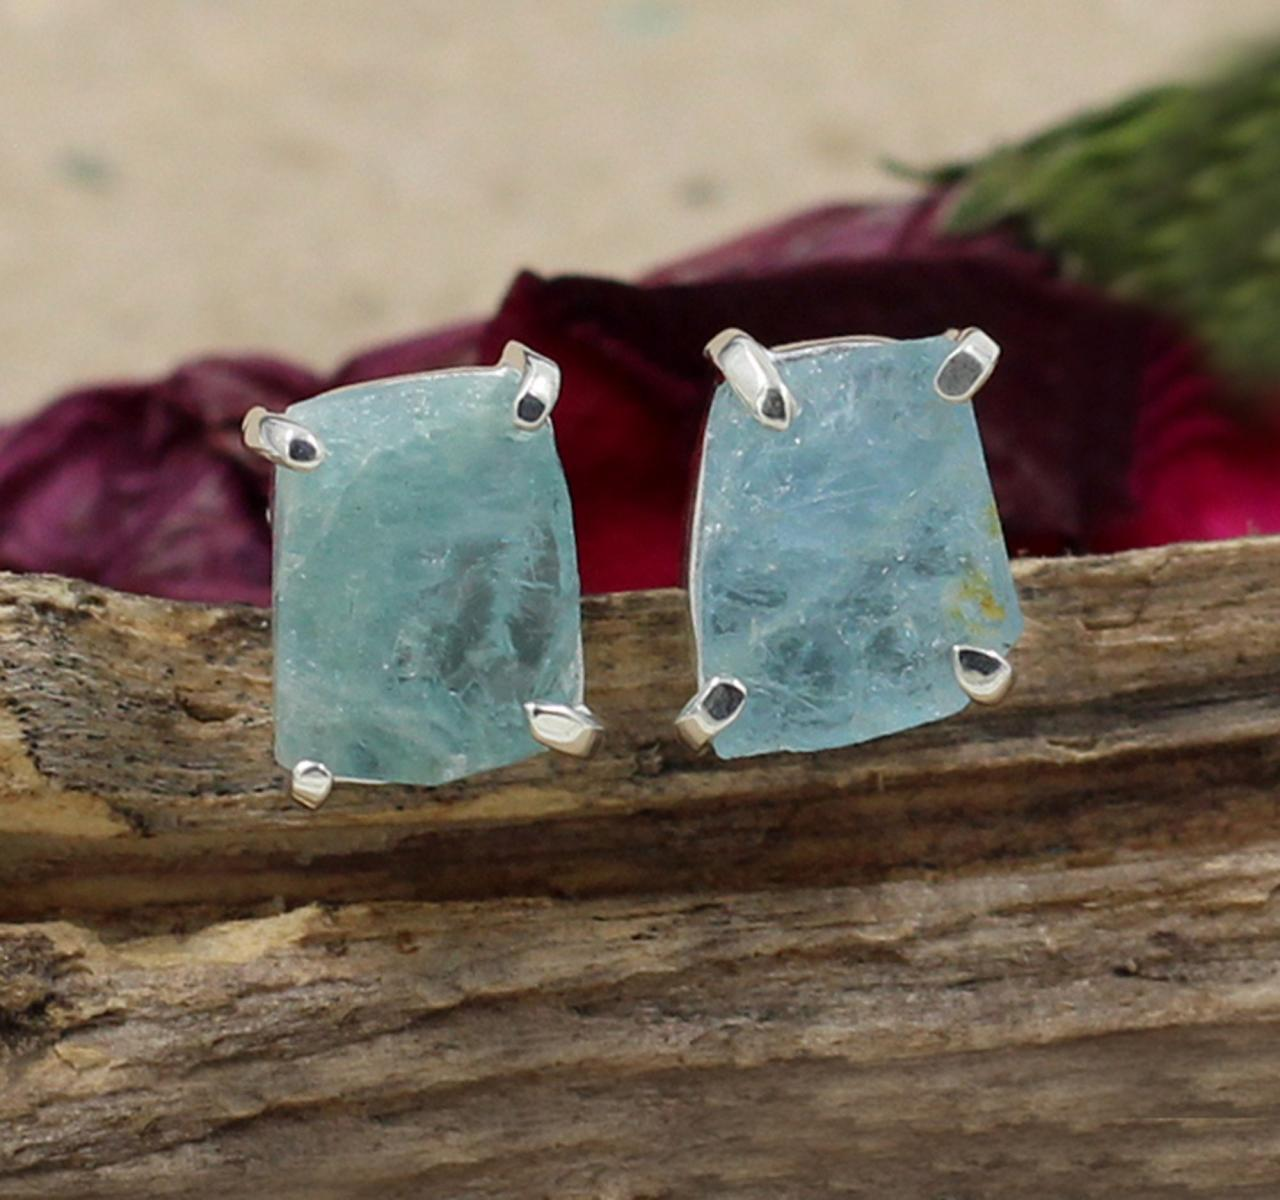 Rough Aquamarine Stud Post Earrings,Solid 925 Sterling Silver Jewelry,Gift Valentine's Earring,Anniversary Gift for wife